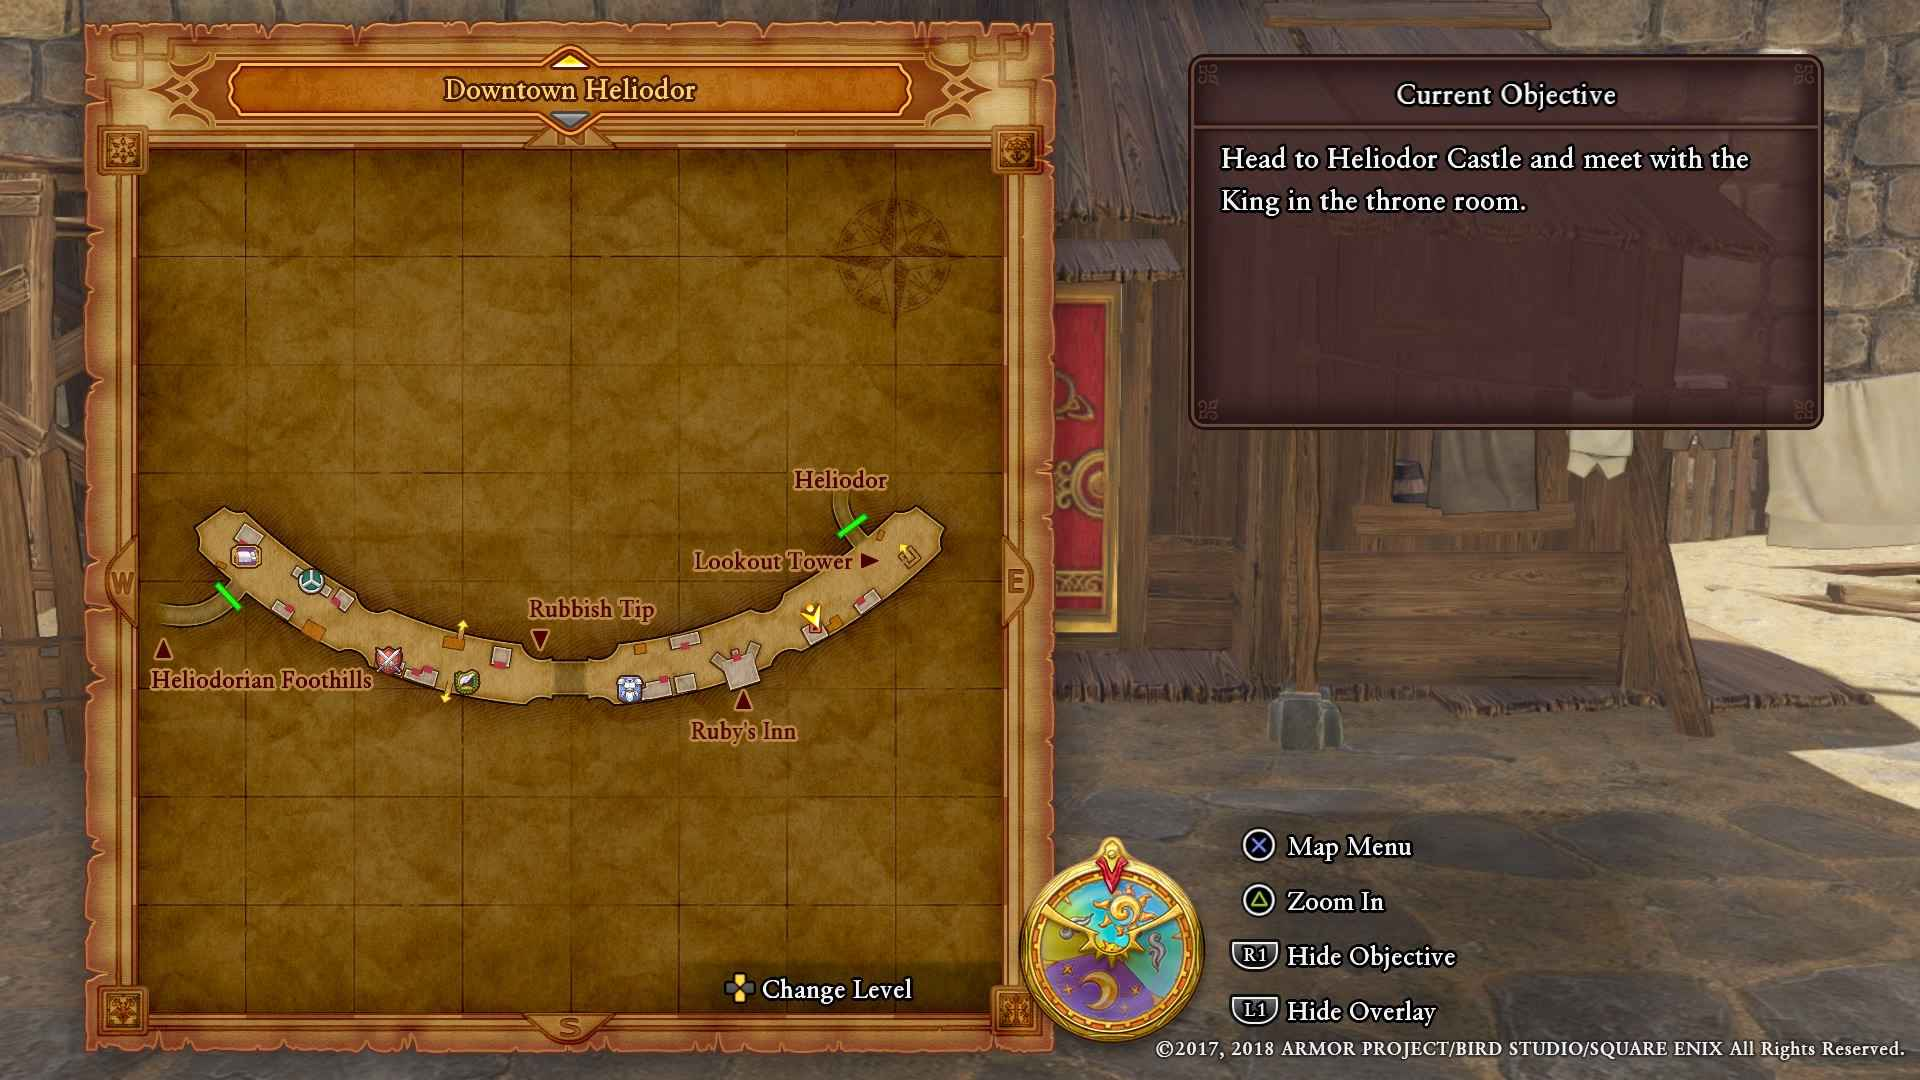 We hope this guide was helpful in your adventures, check out the rest of our guides for Dragon Quest XI: Echoes of an Elusive Age 9 Tips to starting Dragon Age XI Dragon Quest XI: Monster Mount Locations Guide Dragon Quest XI: Fun-Size Forge Crafting Guide Dragon Quest XI: Red Magic Door Locations Guide Dragon Quest XI: Mini Medals Locations 1-20 Dragon Quest XI: Mini Medal Locations 21-40 Dragon Quest XI: Crossbow Target Locations Guide 75